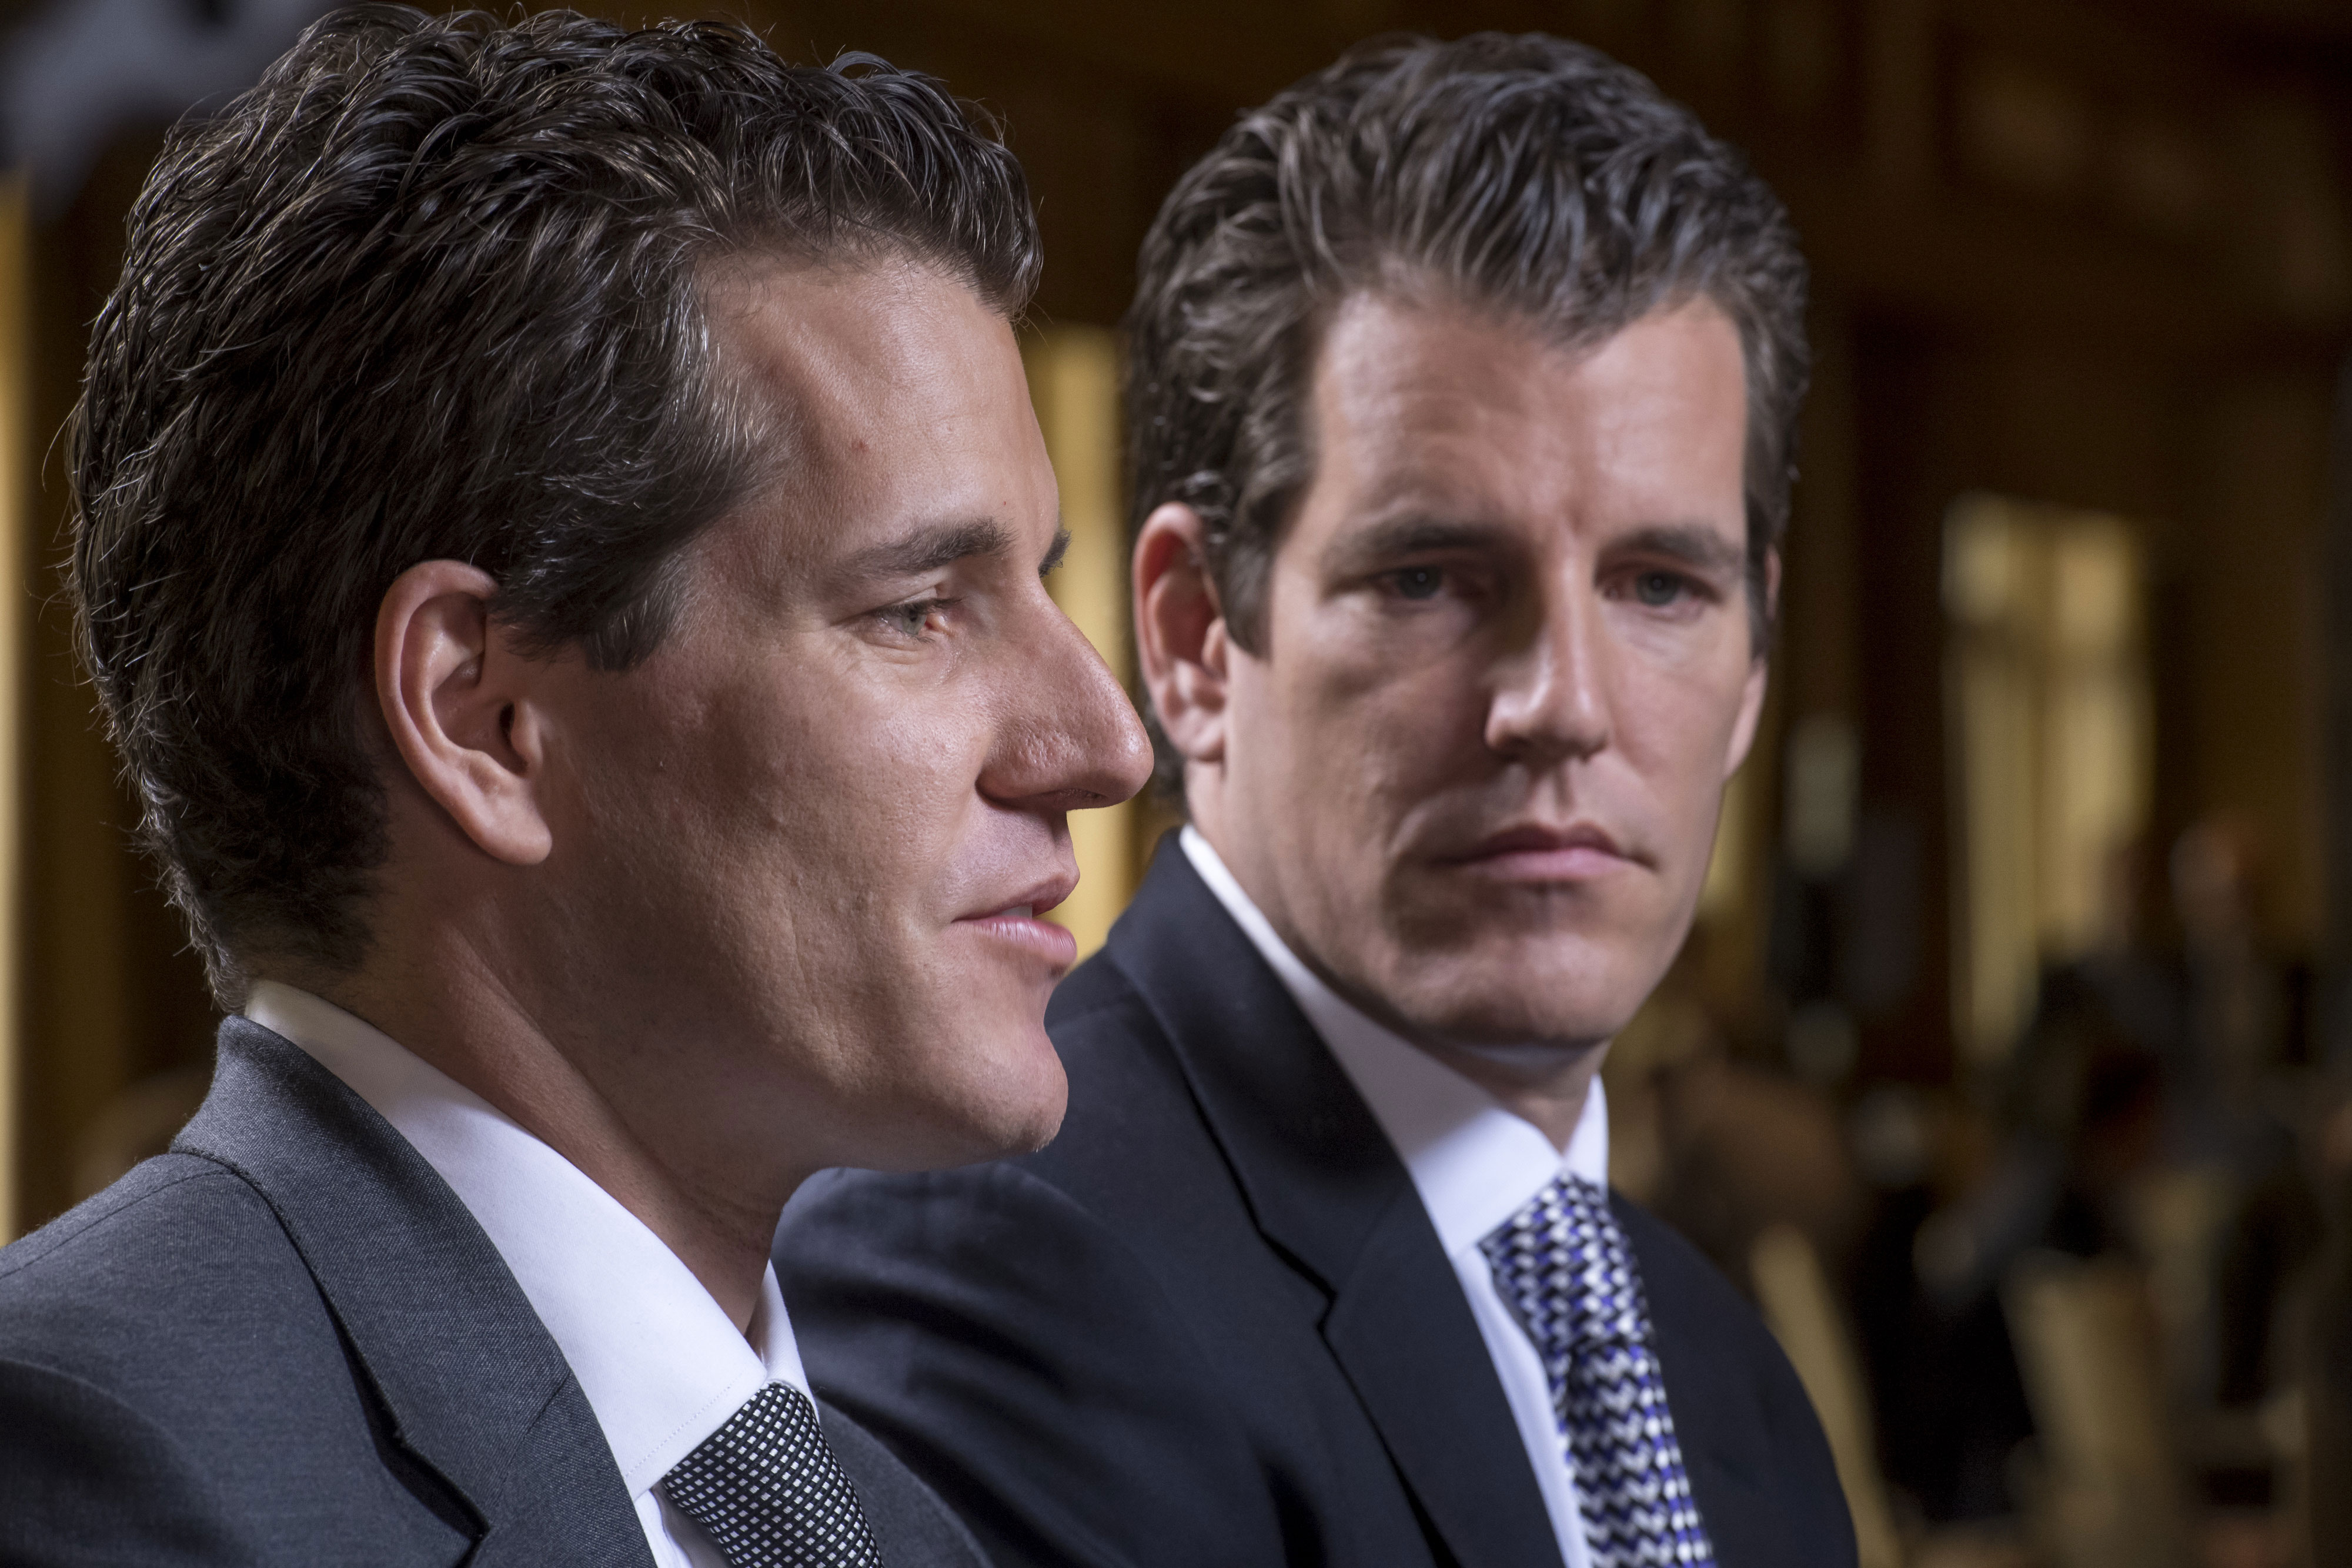 Winklevoss Twins Receive New York Approval To Launch New Crypto Coin American Banker